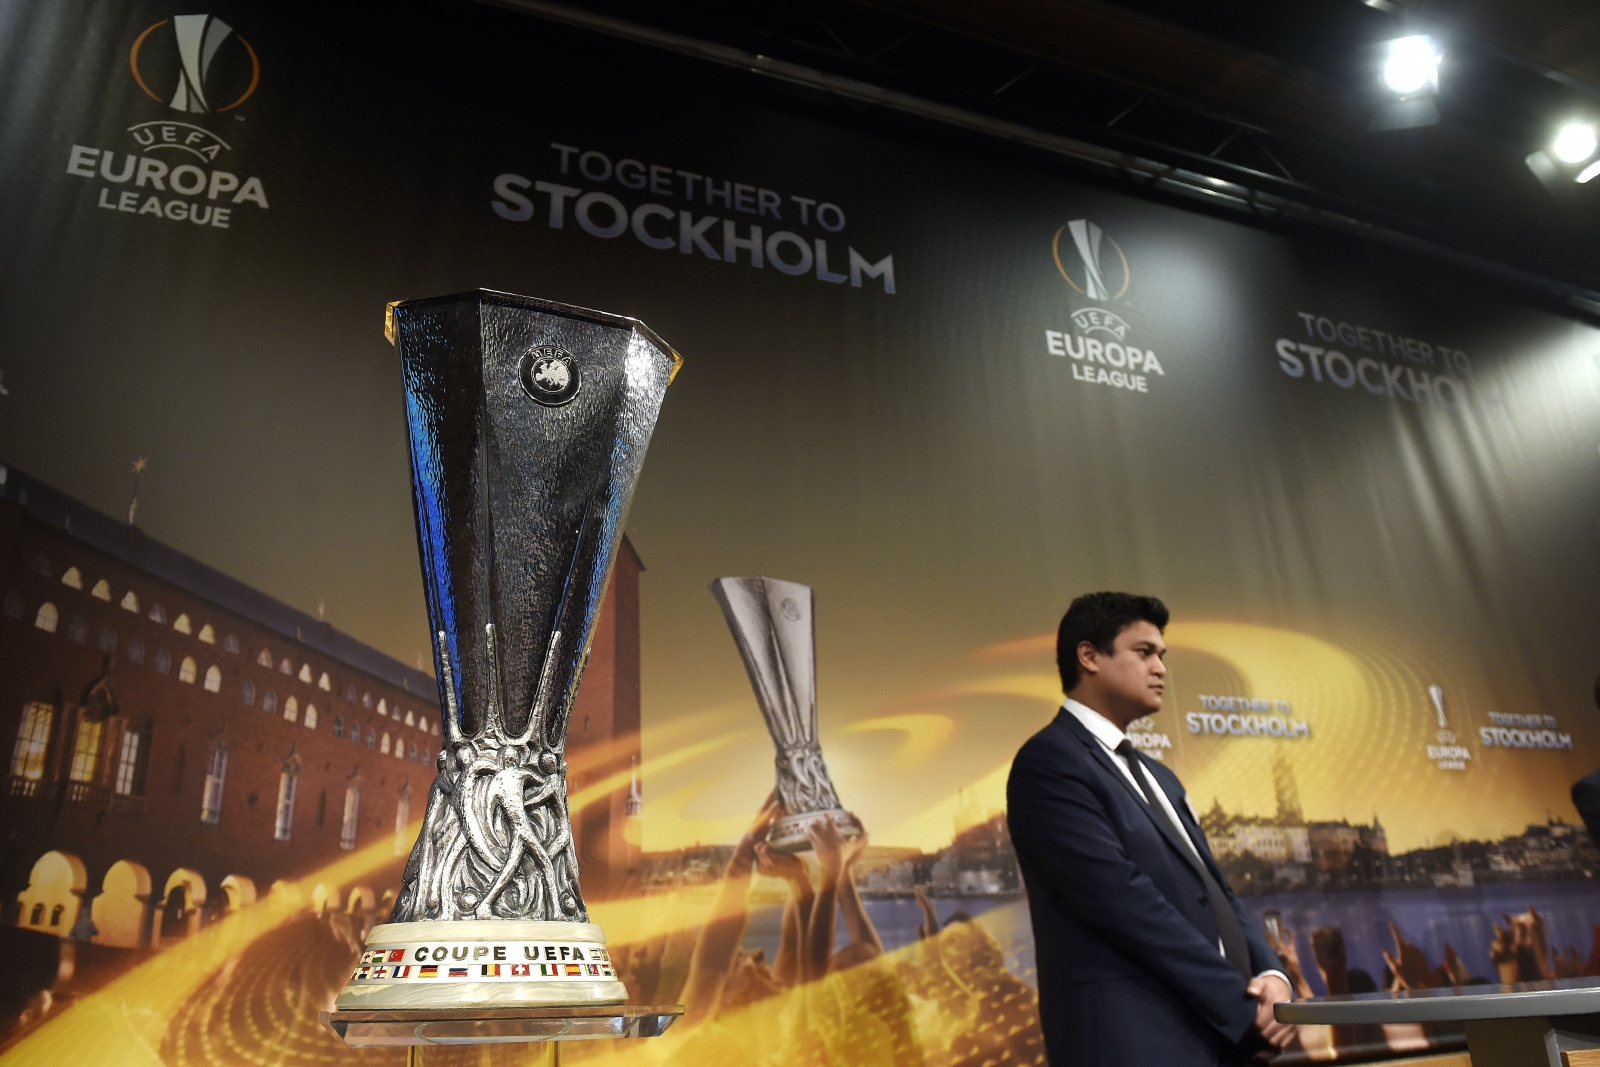 Europa League: Europa League Draw: Manchester United To Face Anderlecht